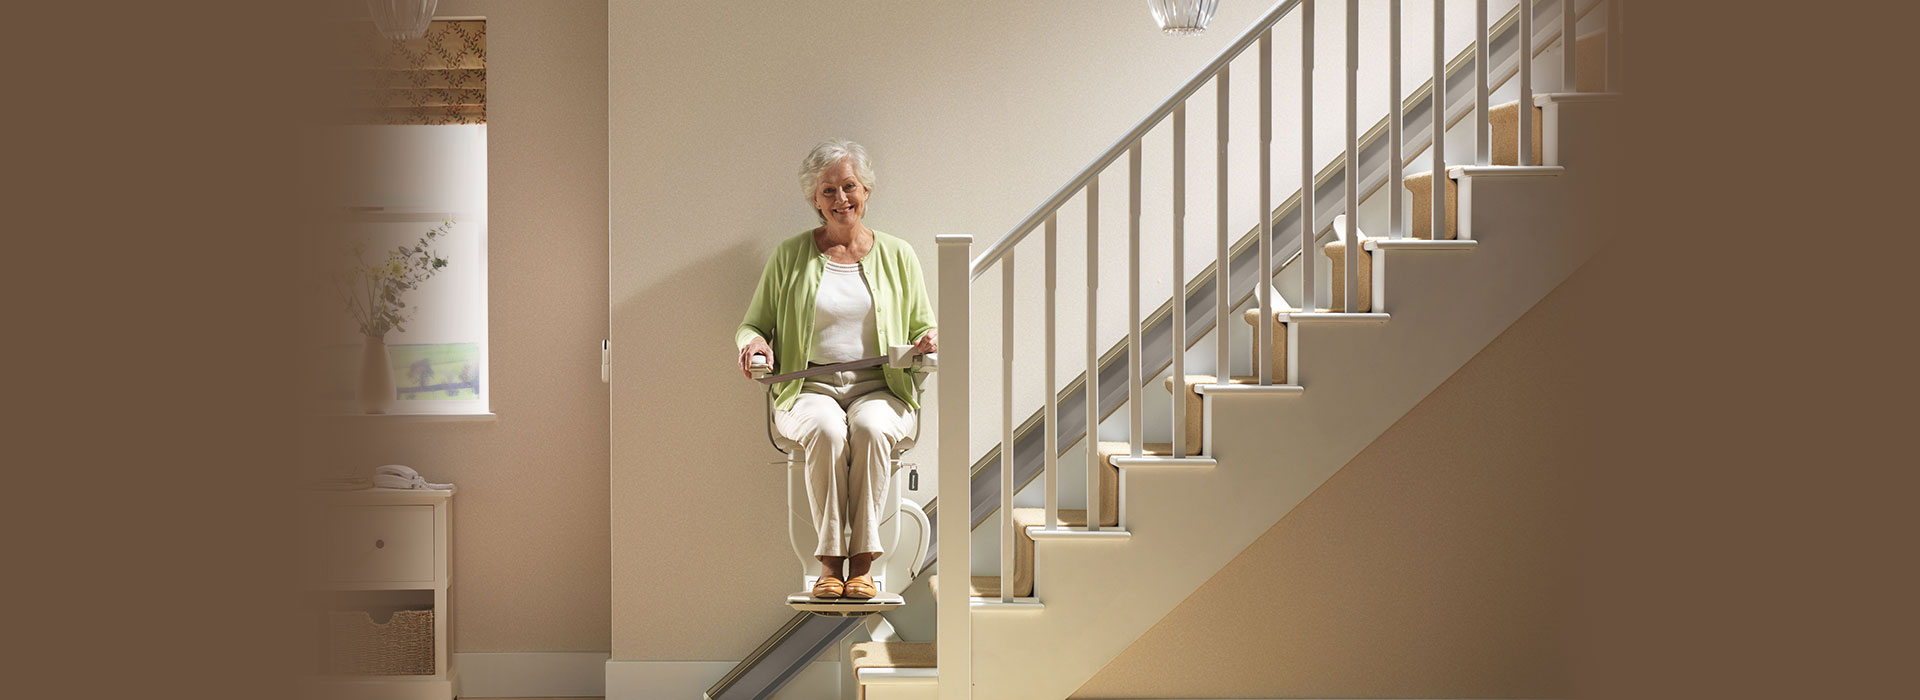 Used Stair Lifts Santa Ana Inexpensive Stairlifts Bruno